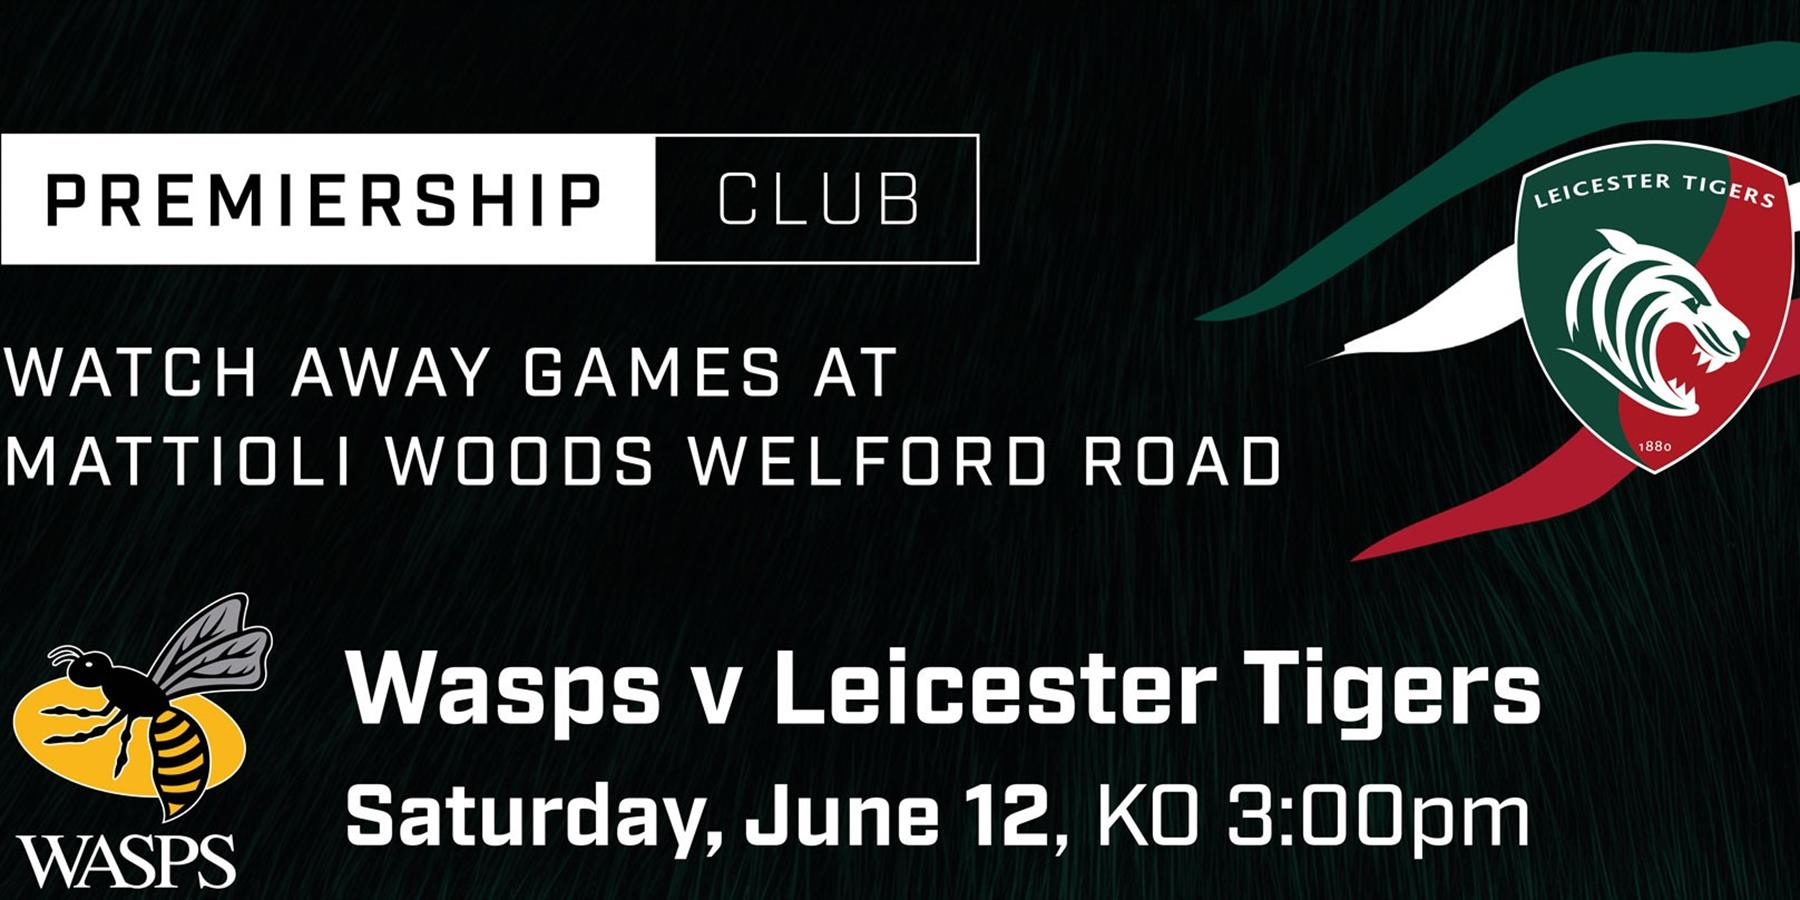 Wasps vs Leicester Tigers away game at Welford Road